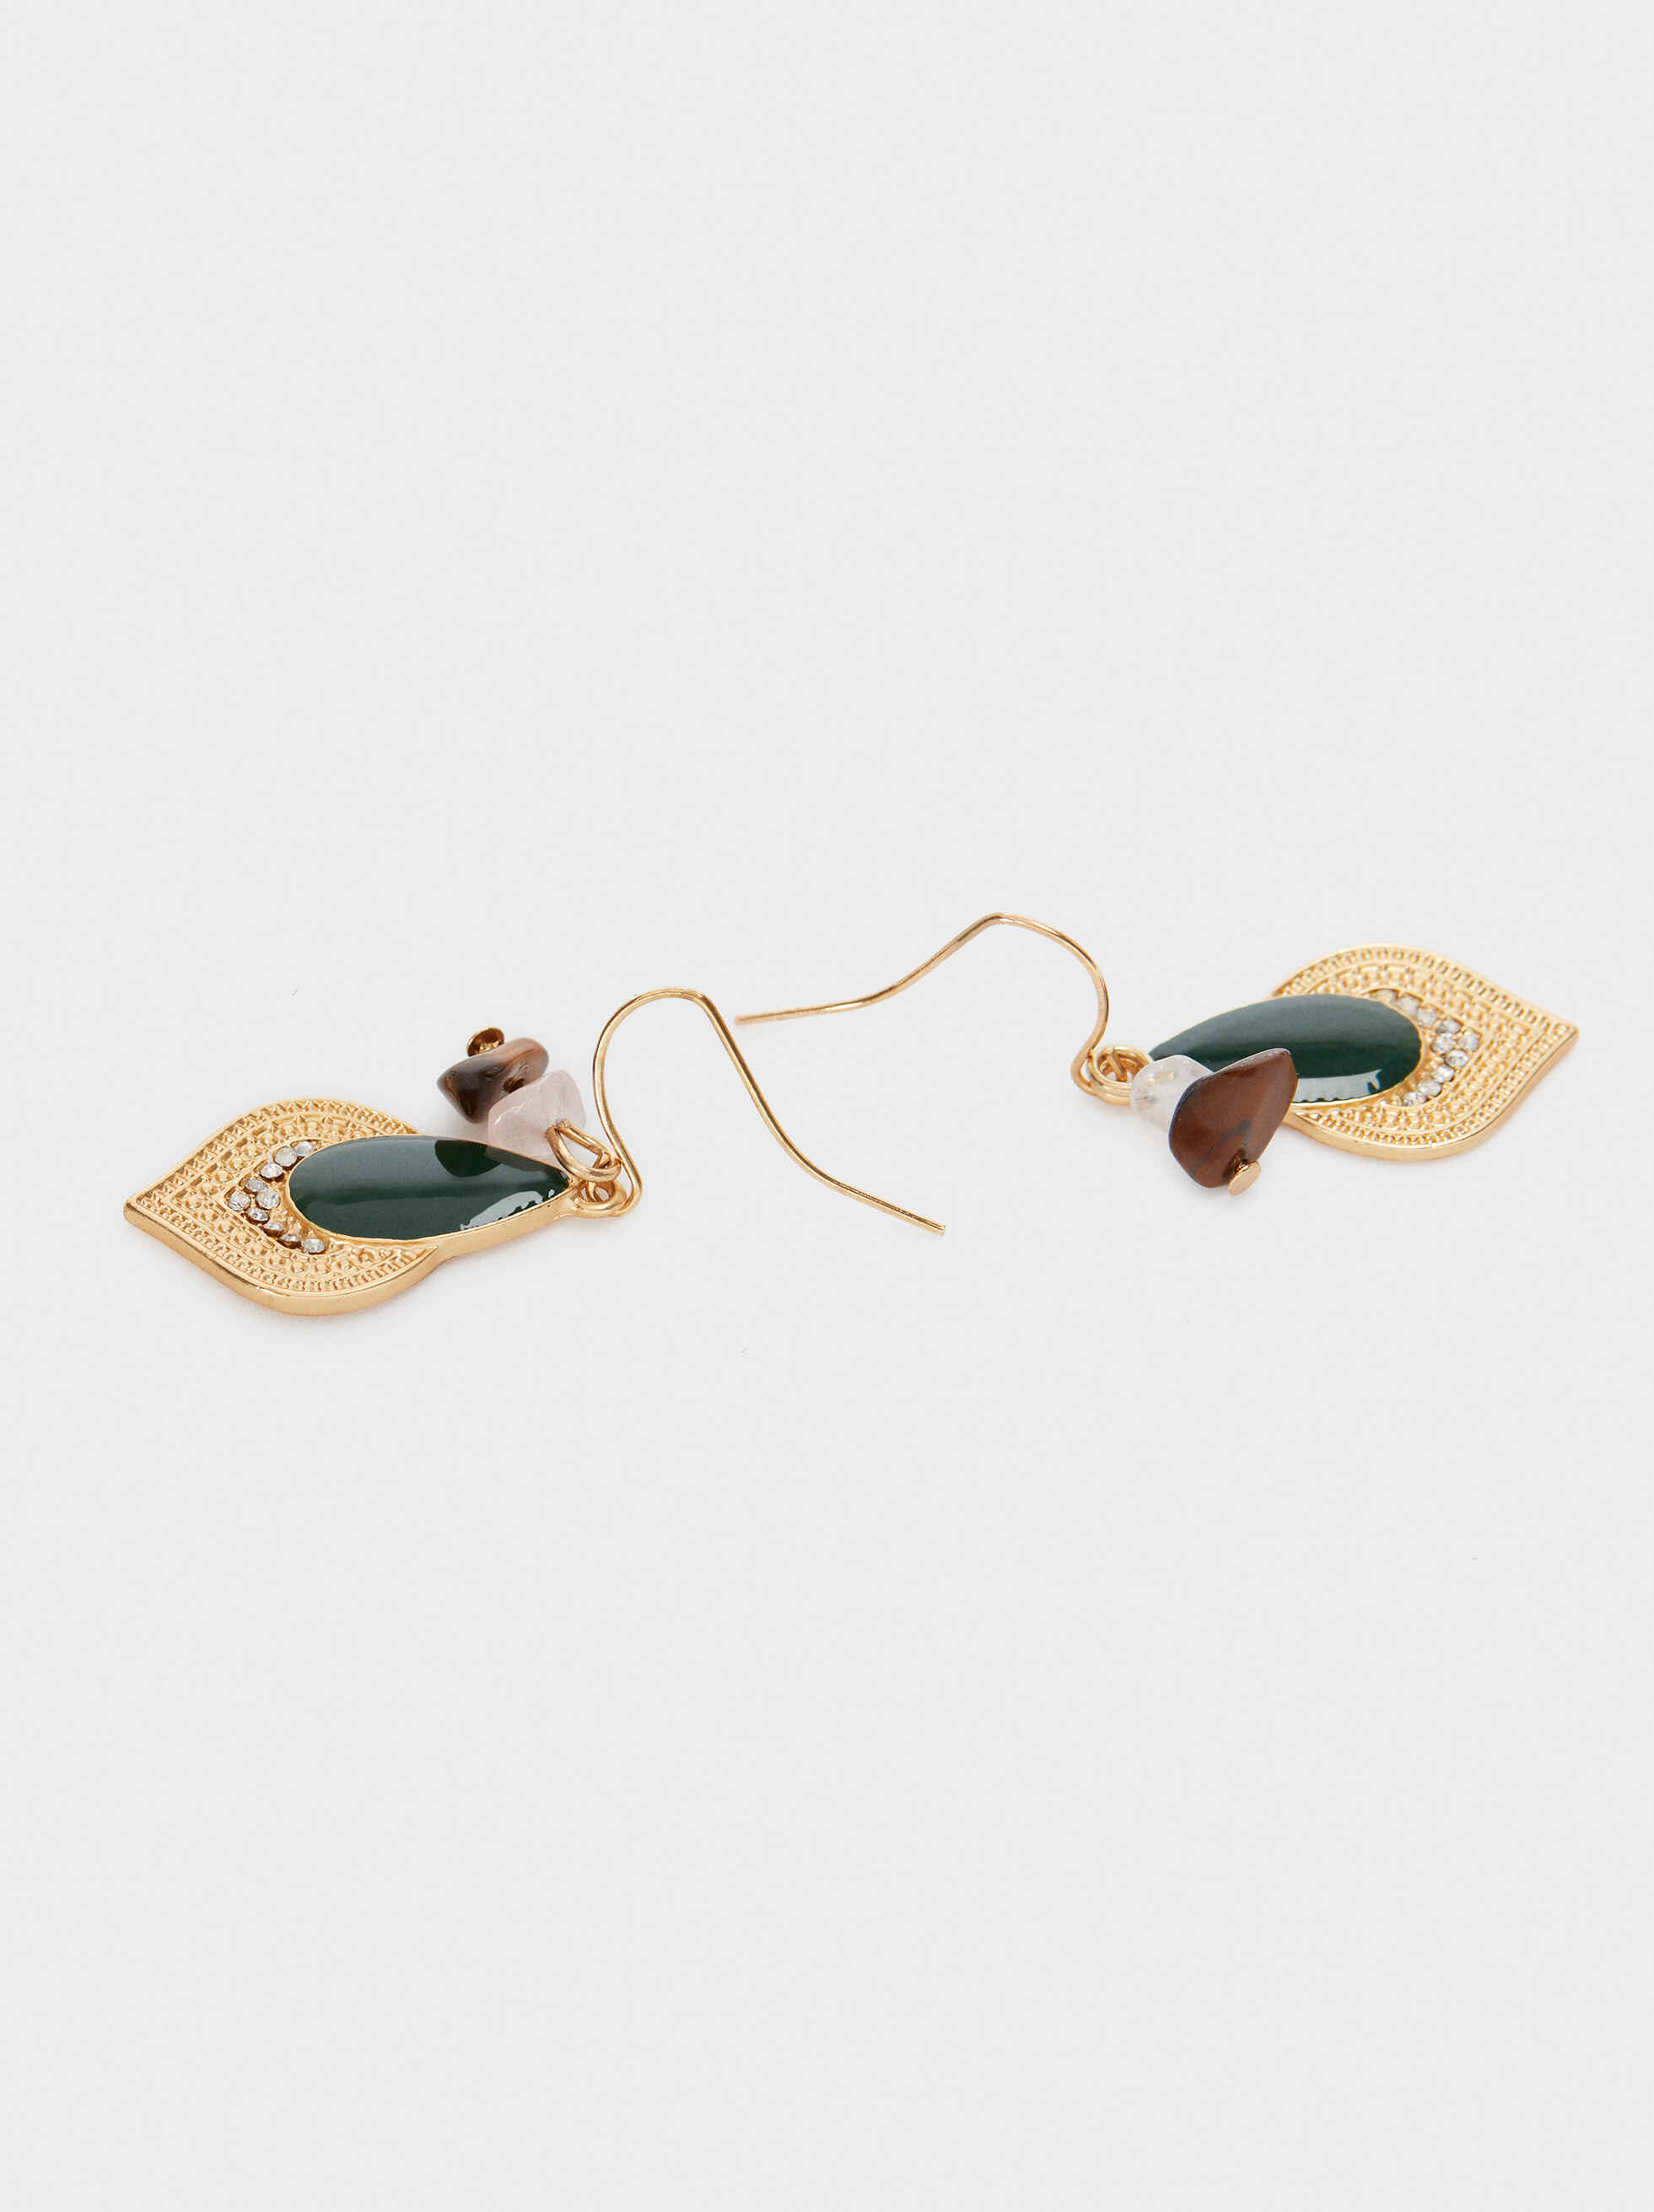 Medium Gold Earrings With Stones, Multicolor, hi-res